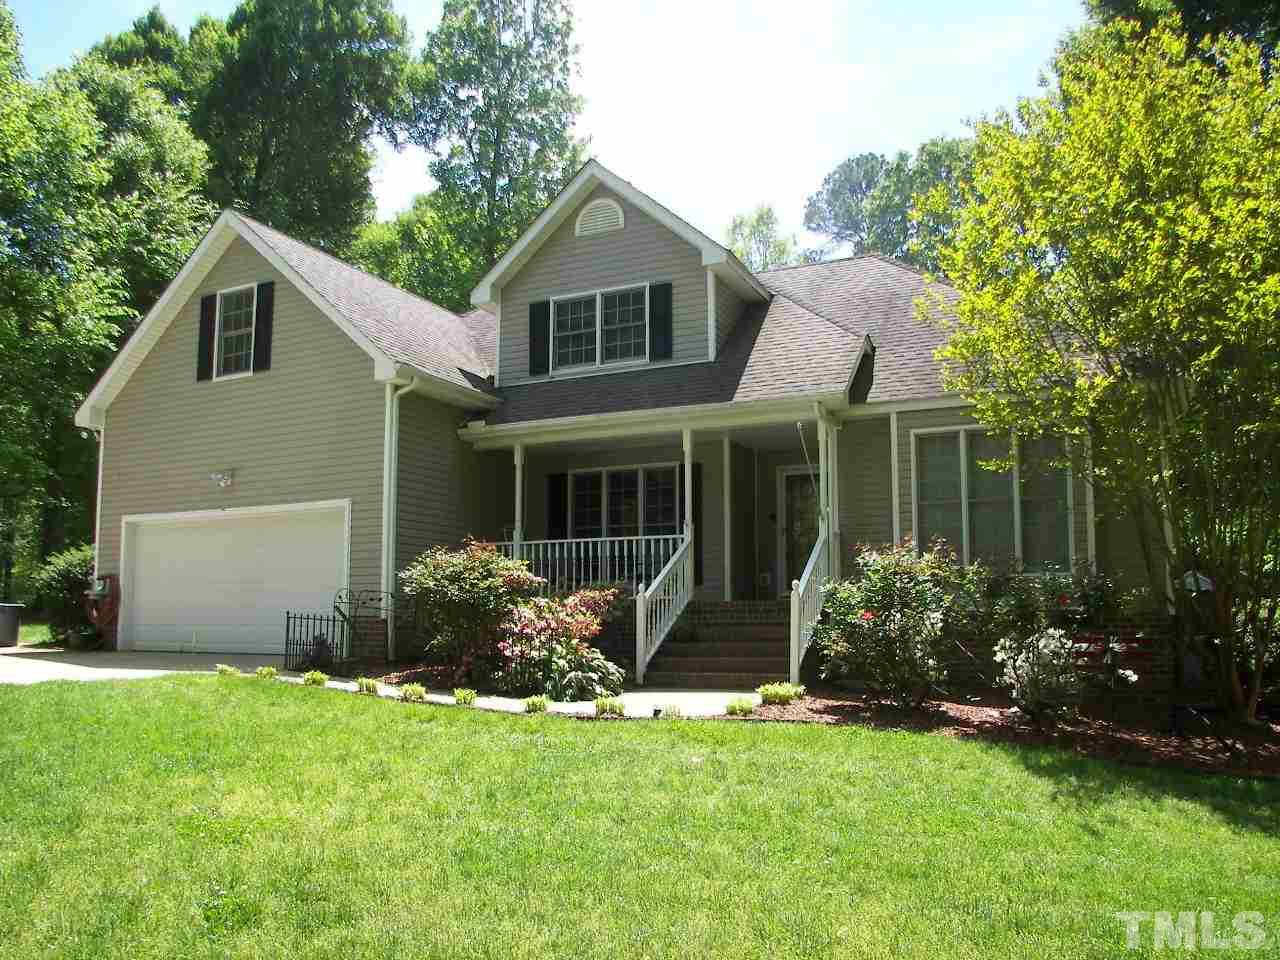 113 Richland Dr, Youngsville, NC